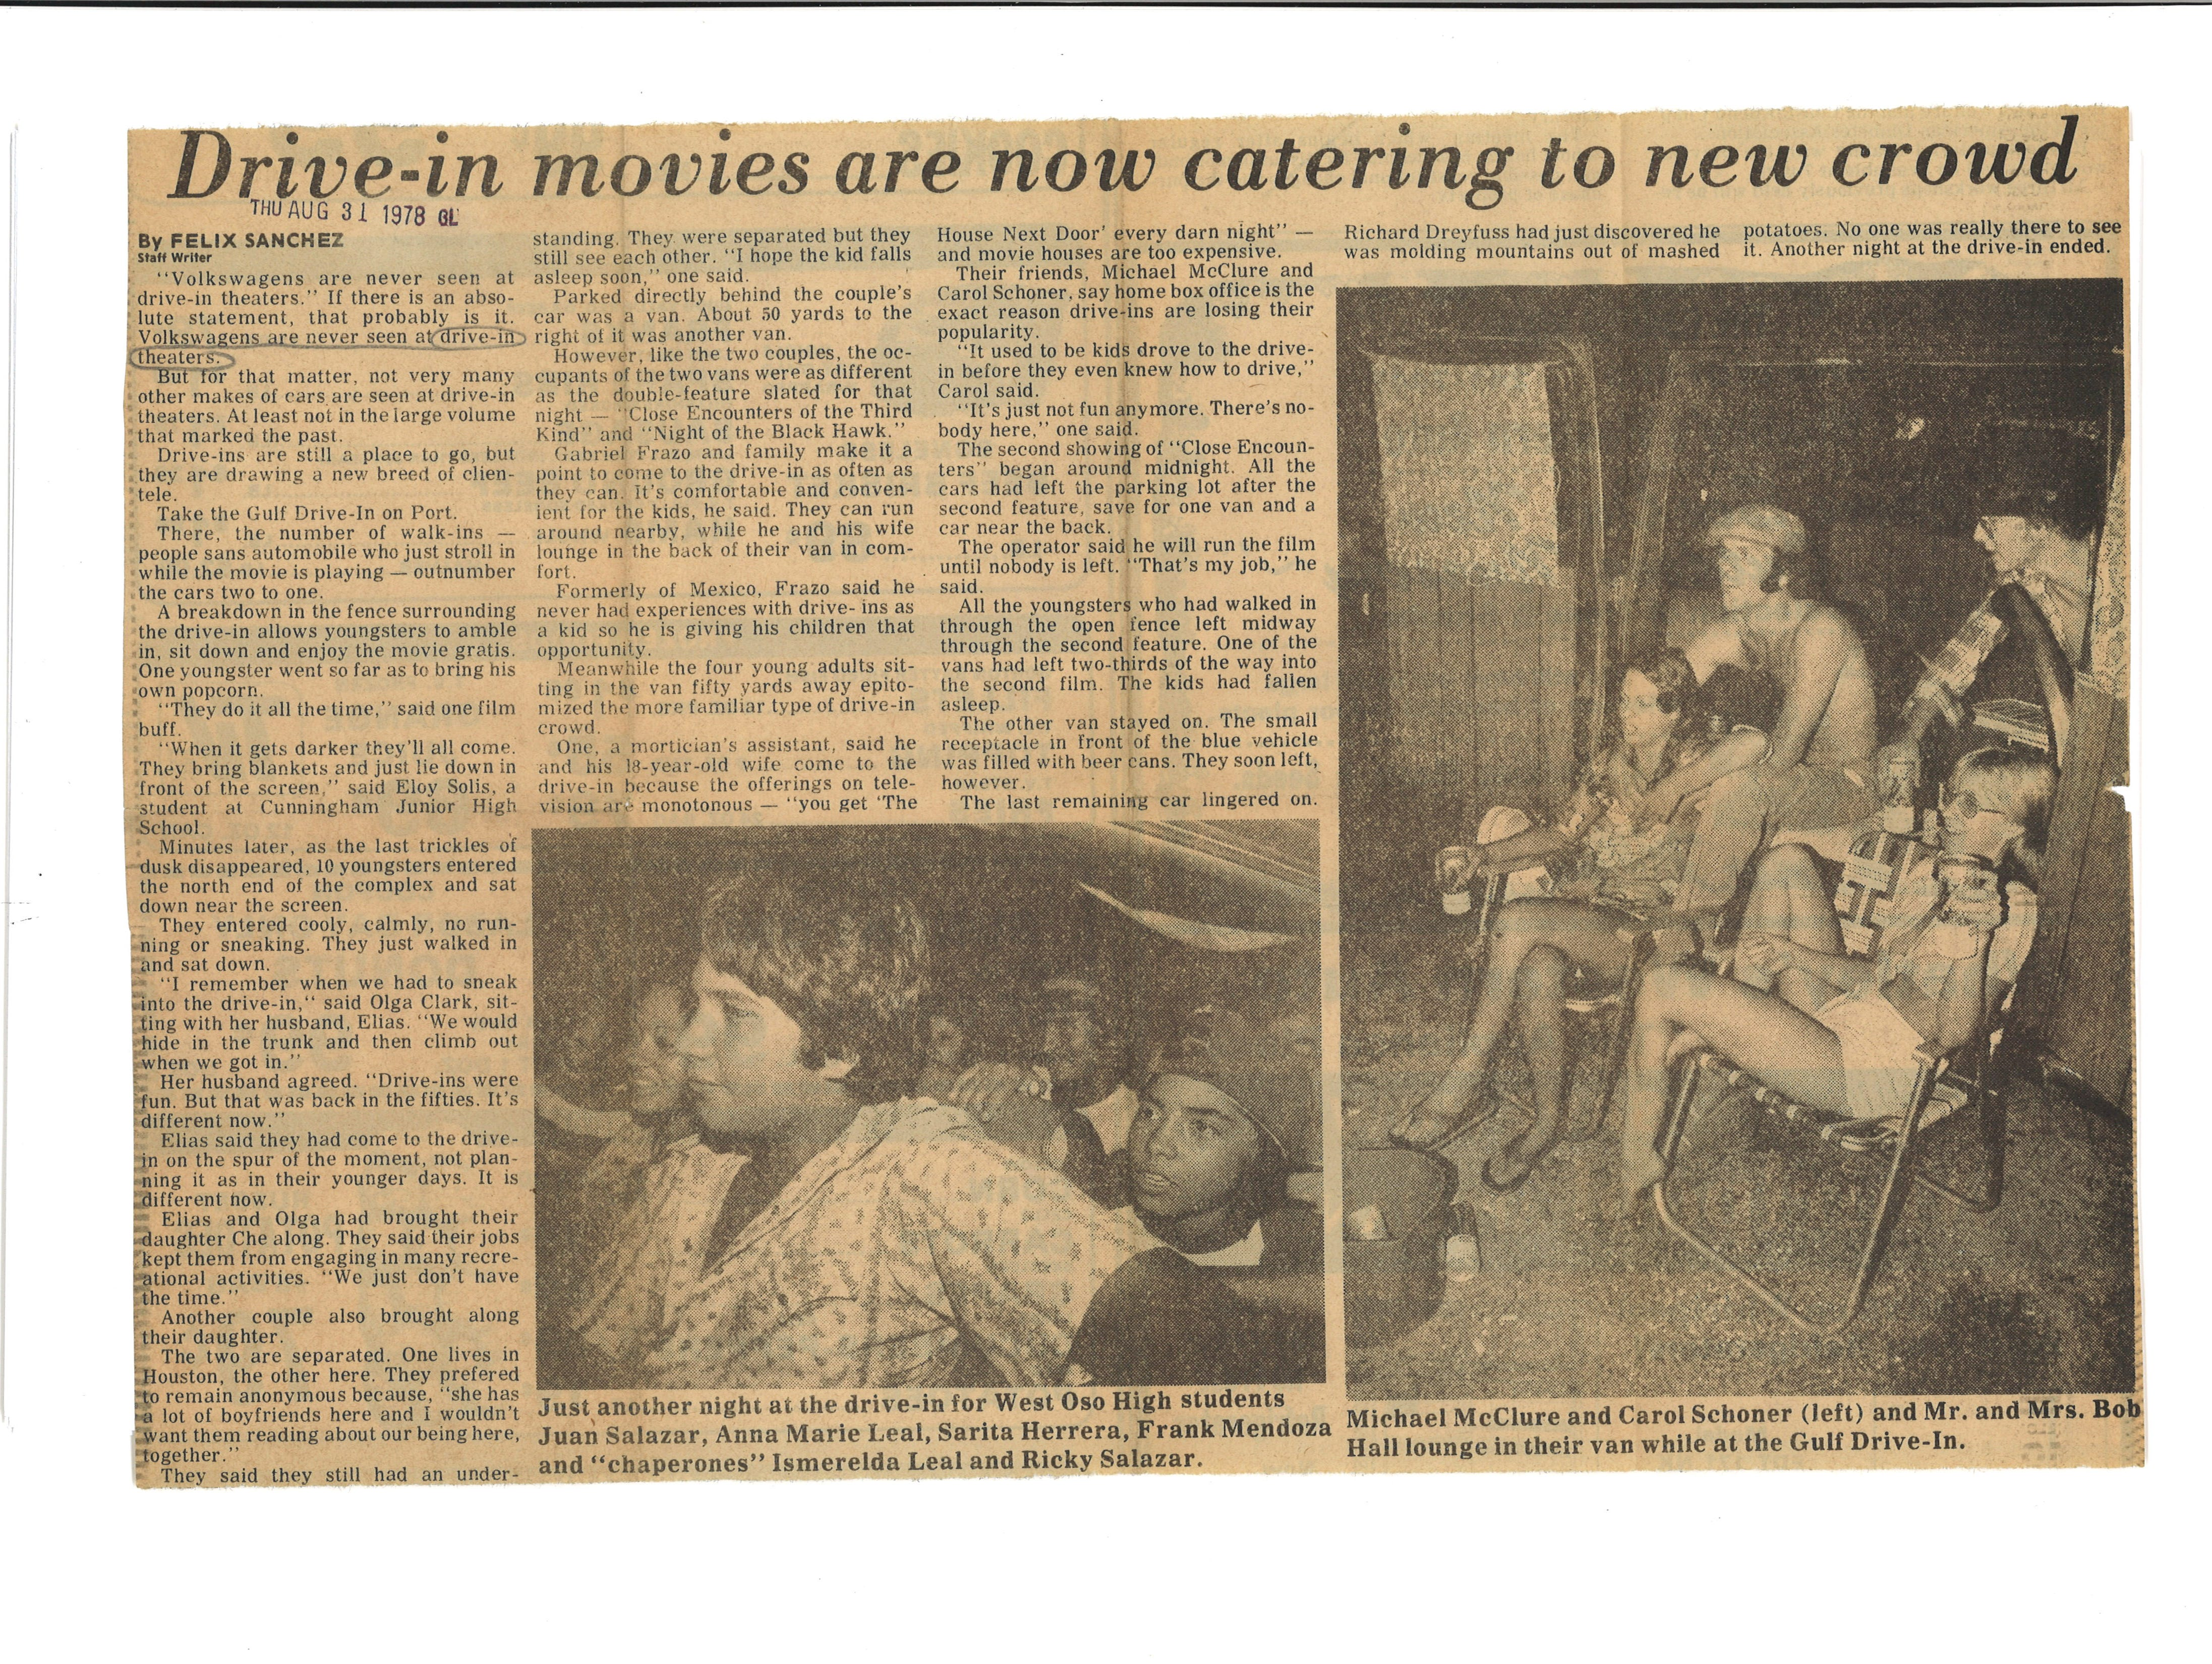 Article from Aug. 31, 1978 Caller on drive-in movie theaters.